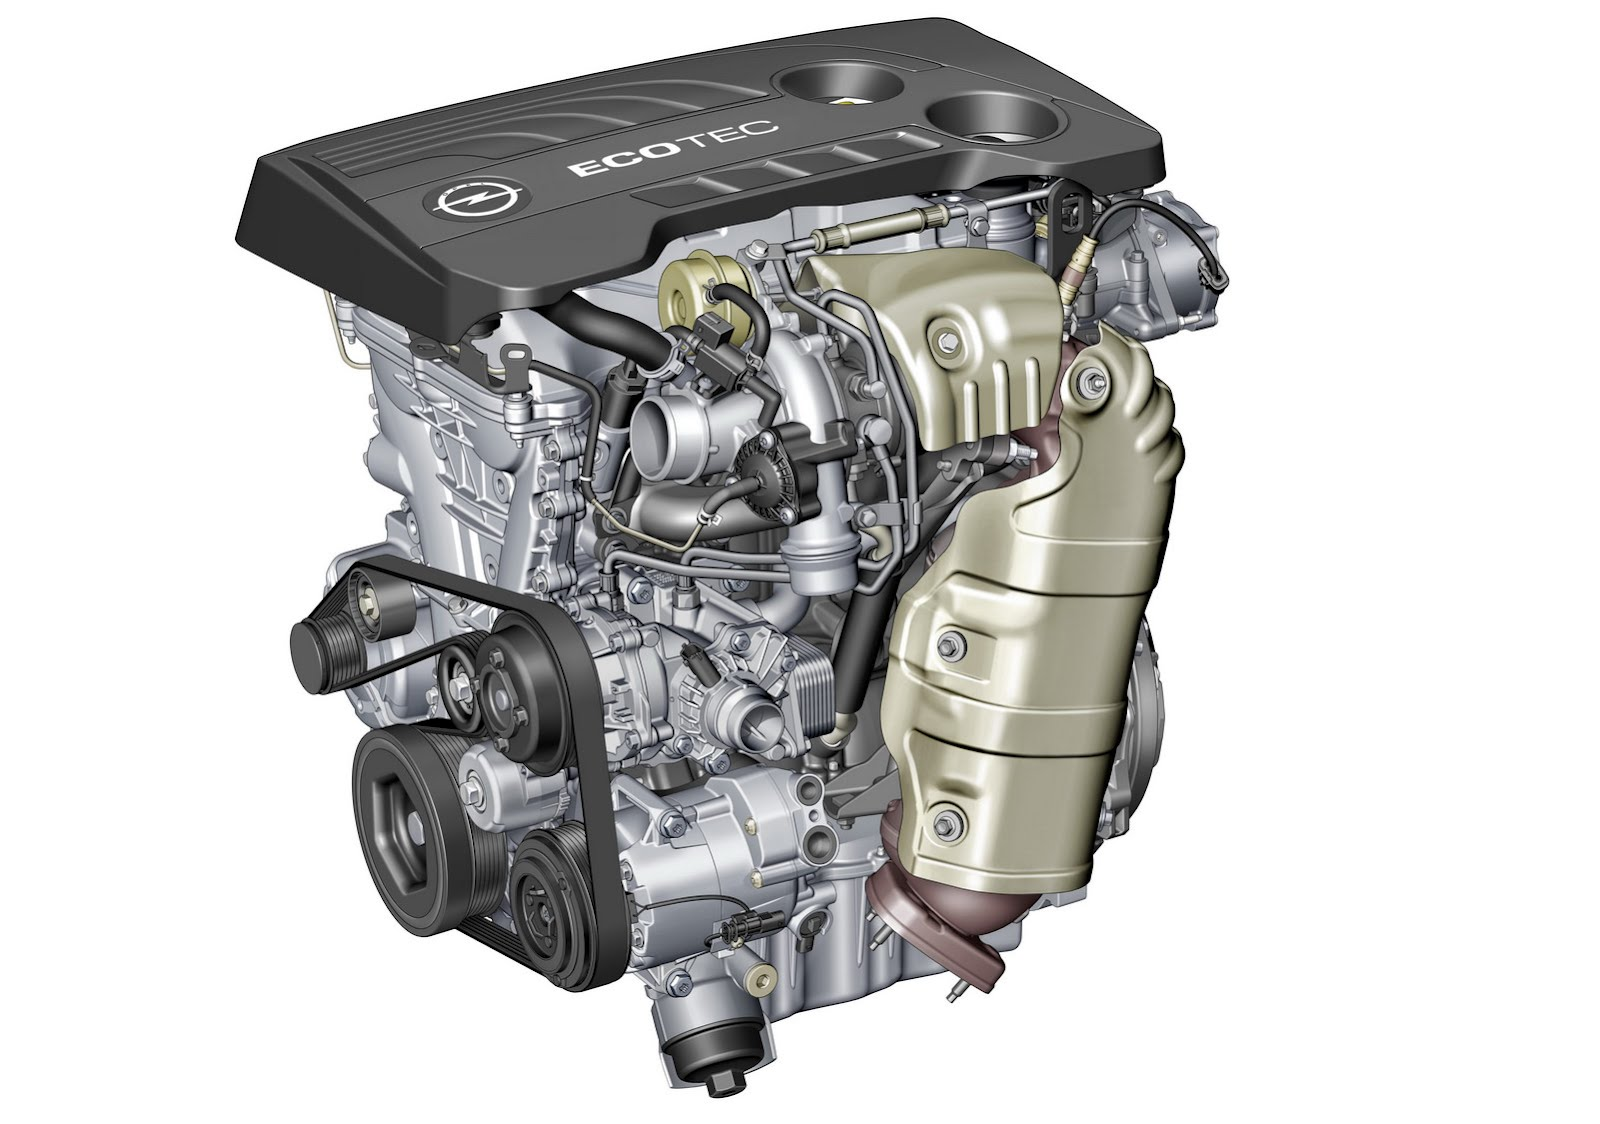 2010 chevy traverse engine diagram with Gm Opel Sidi Engine Family Explained 68707 on New 2010 Chevrolet Equinox Revealed Ahead Of Detroit Auto Show Detais And Video together with 2008 Gmc Acadia Cam Shaft Actuator additionally 2007 2008 Gmc Acadia V6 3 6l Serpentine Belt Diagram besides 11 Buick Enclave Battery Location in addition 1995.